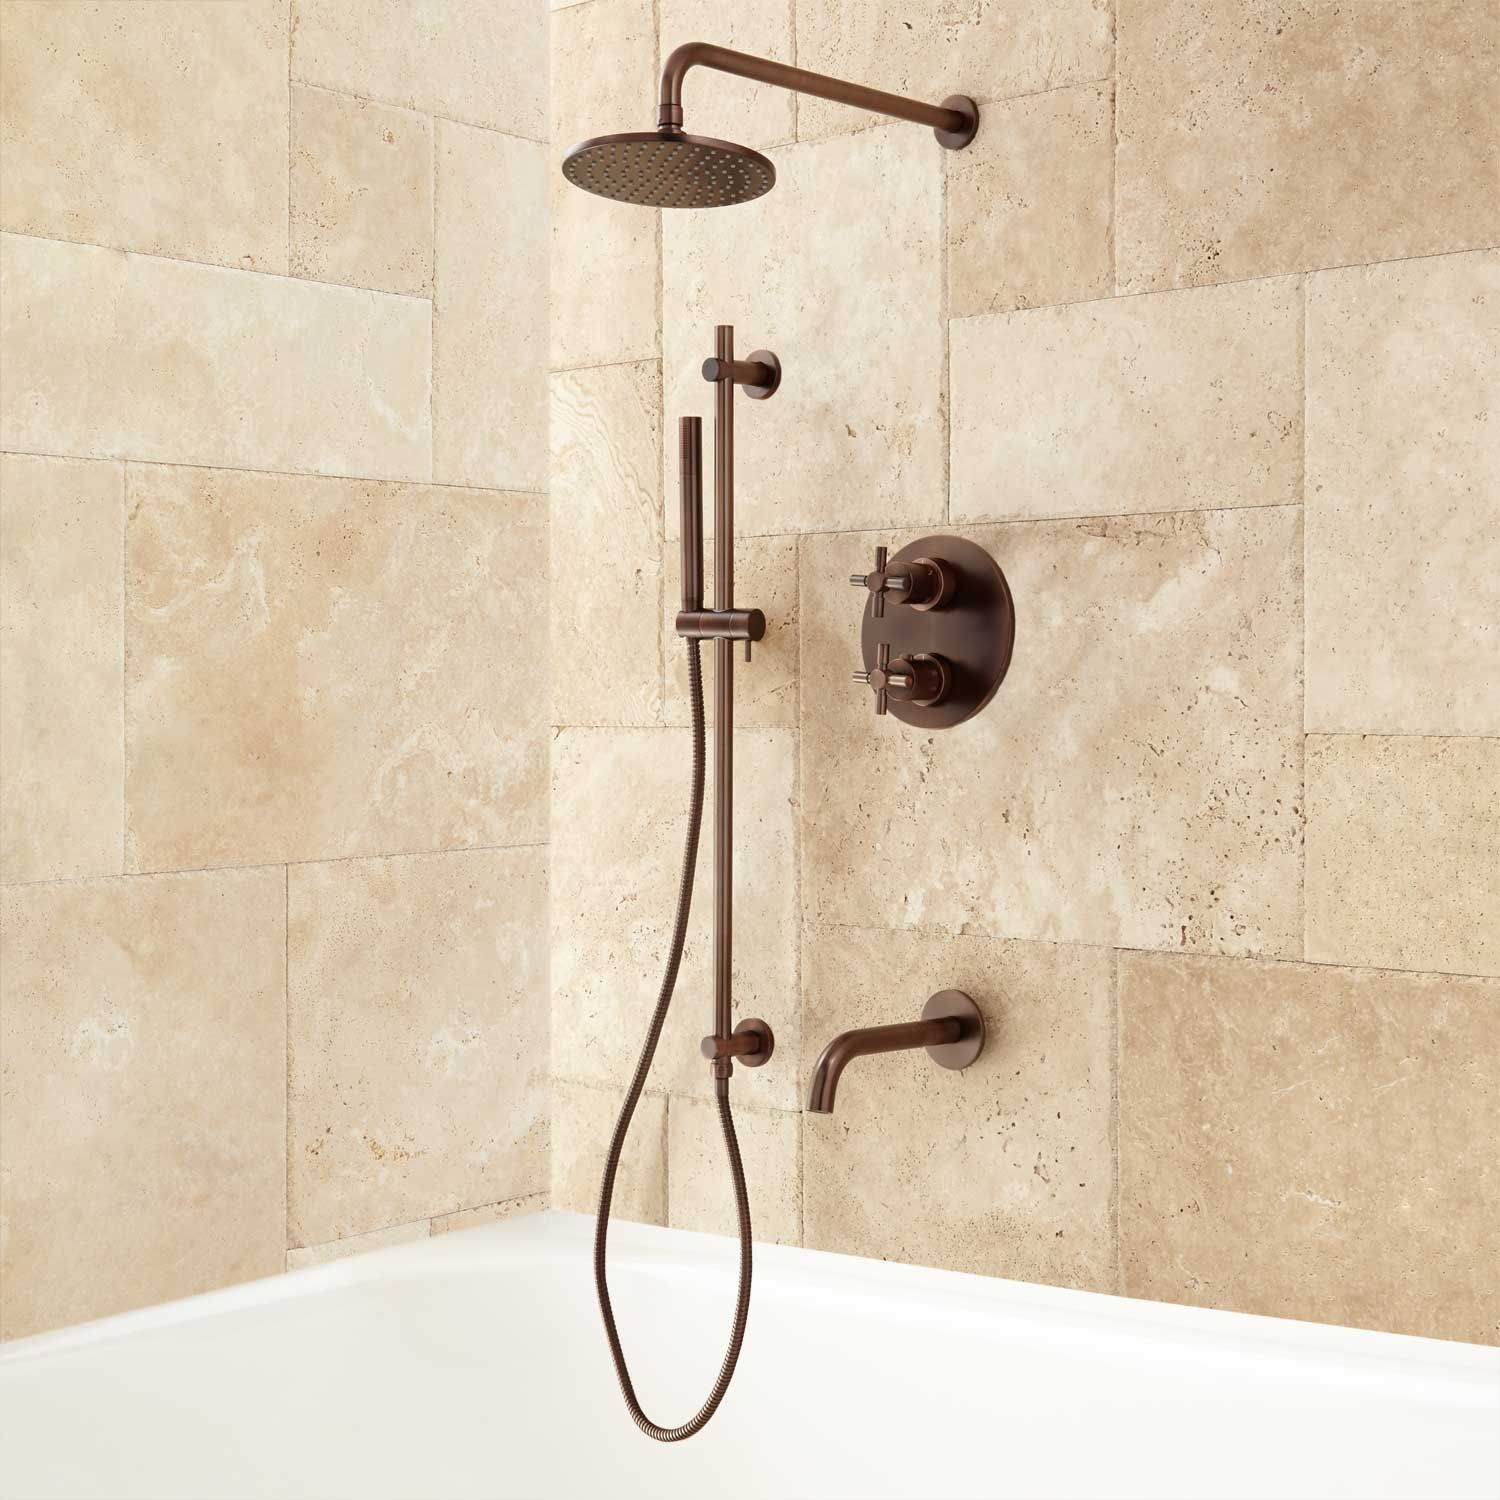 Kennedy Thermostatic Tub & Shower System | Shower systems, Tubs and ...